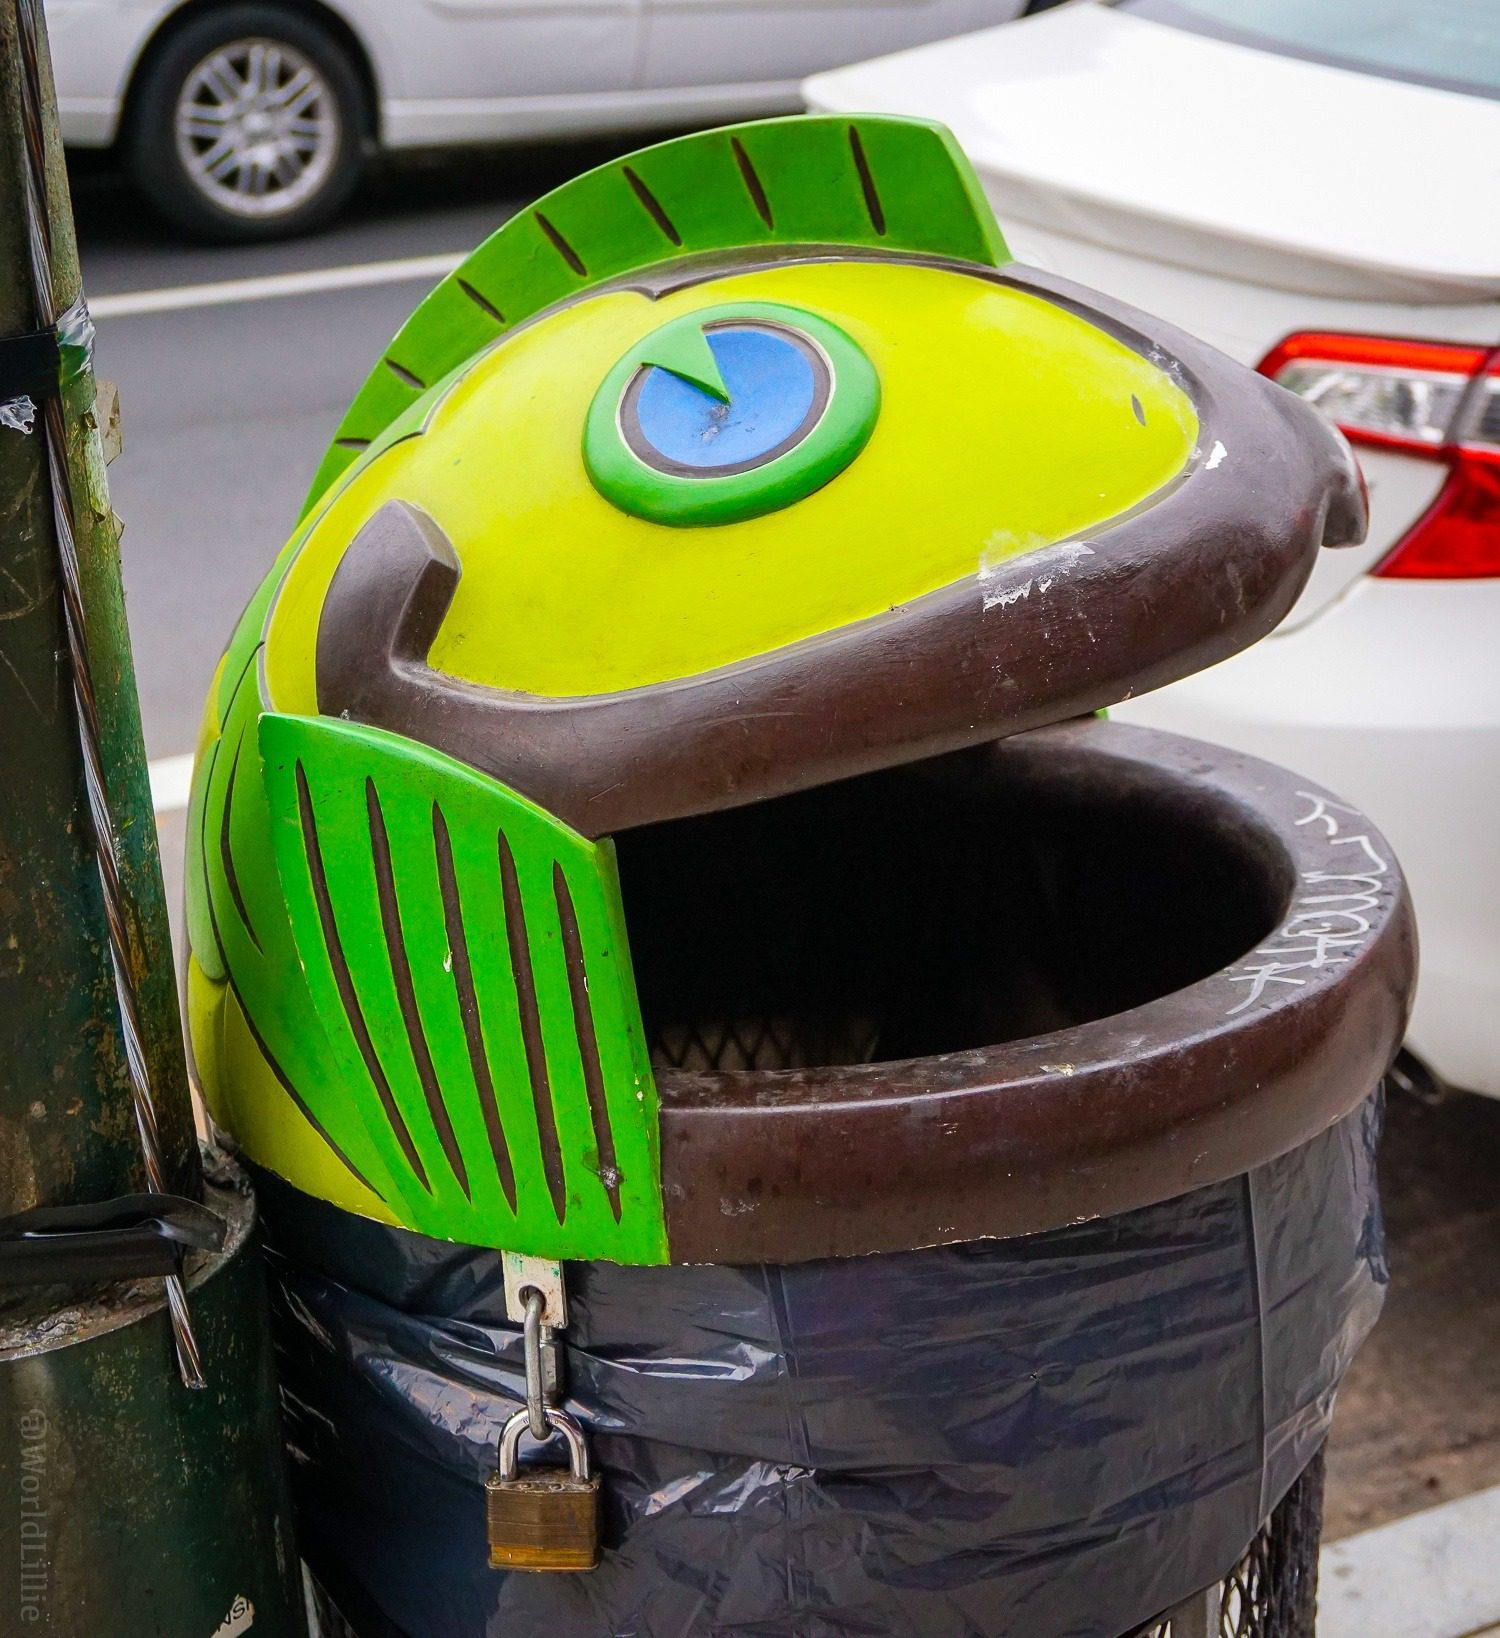 Even the trashcans in Fishtown are fish-themed!